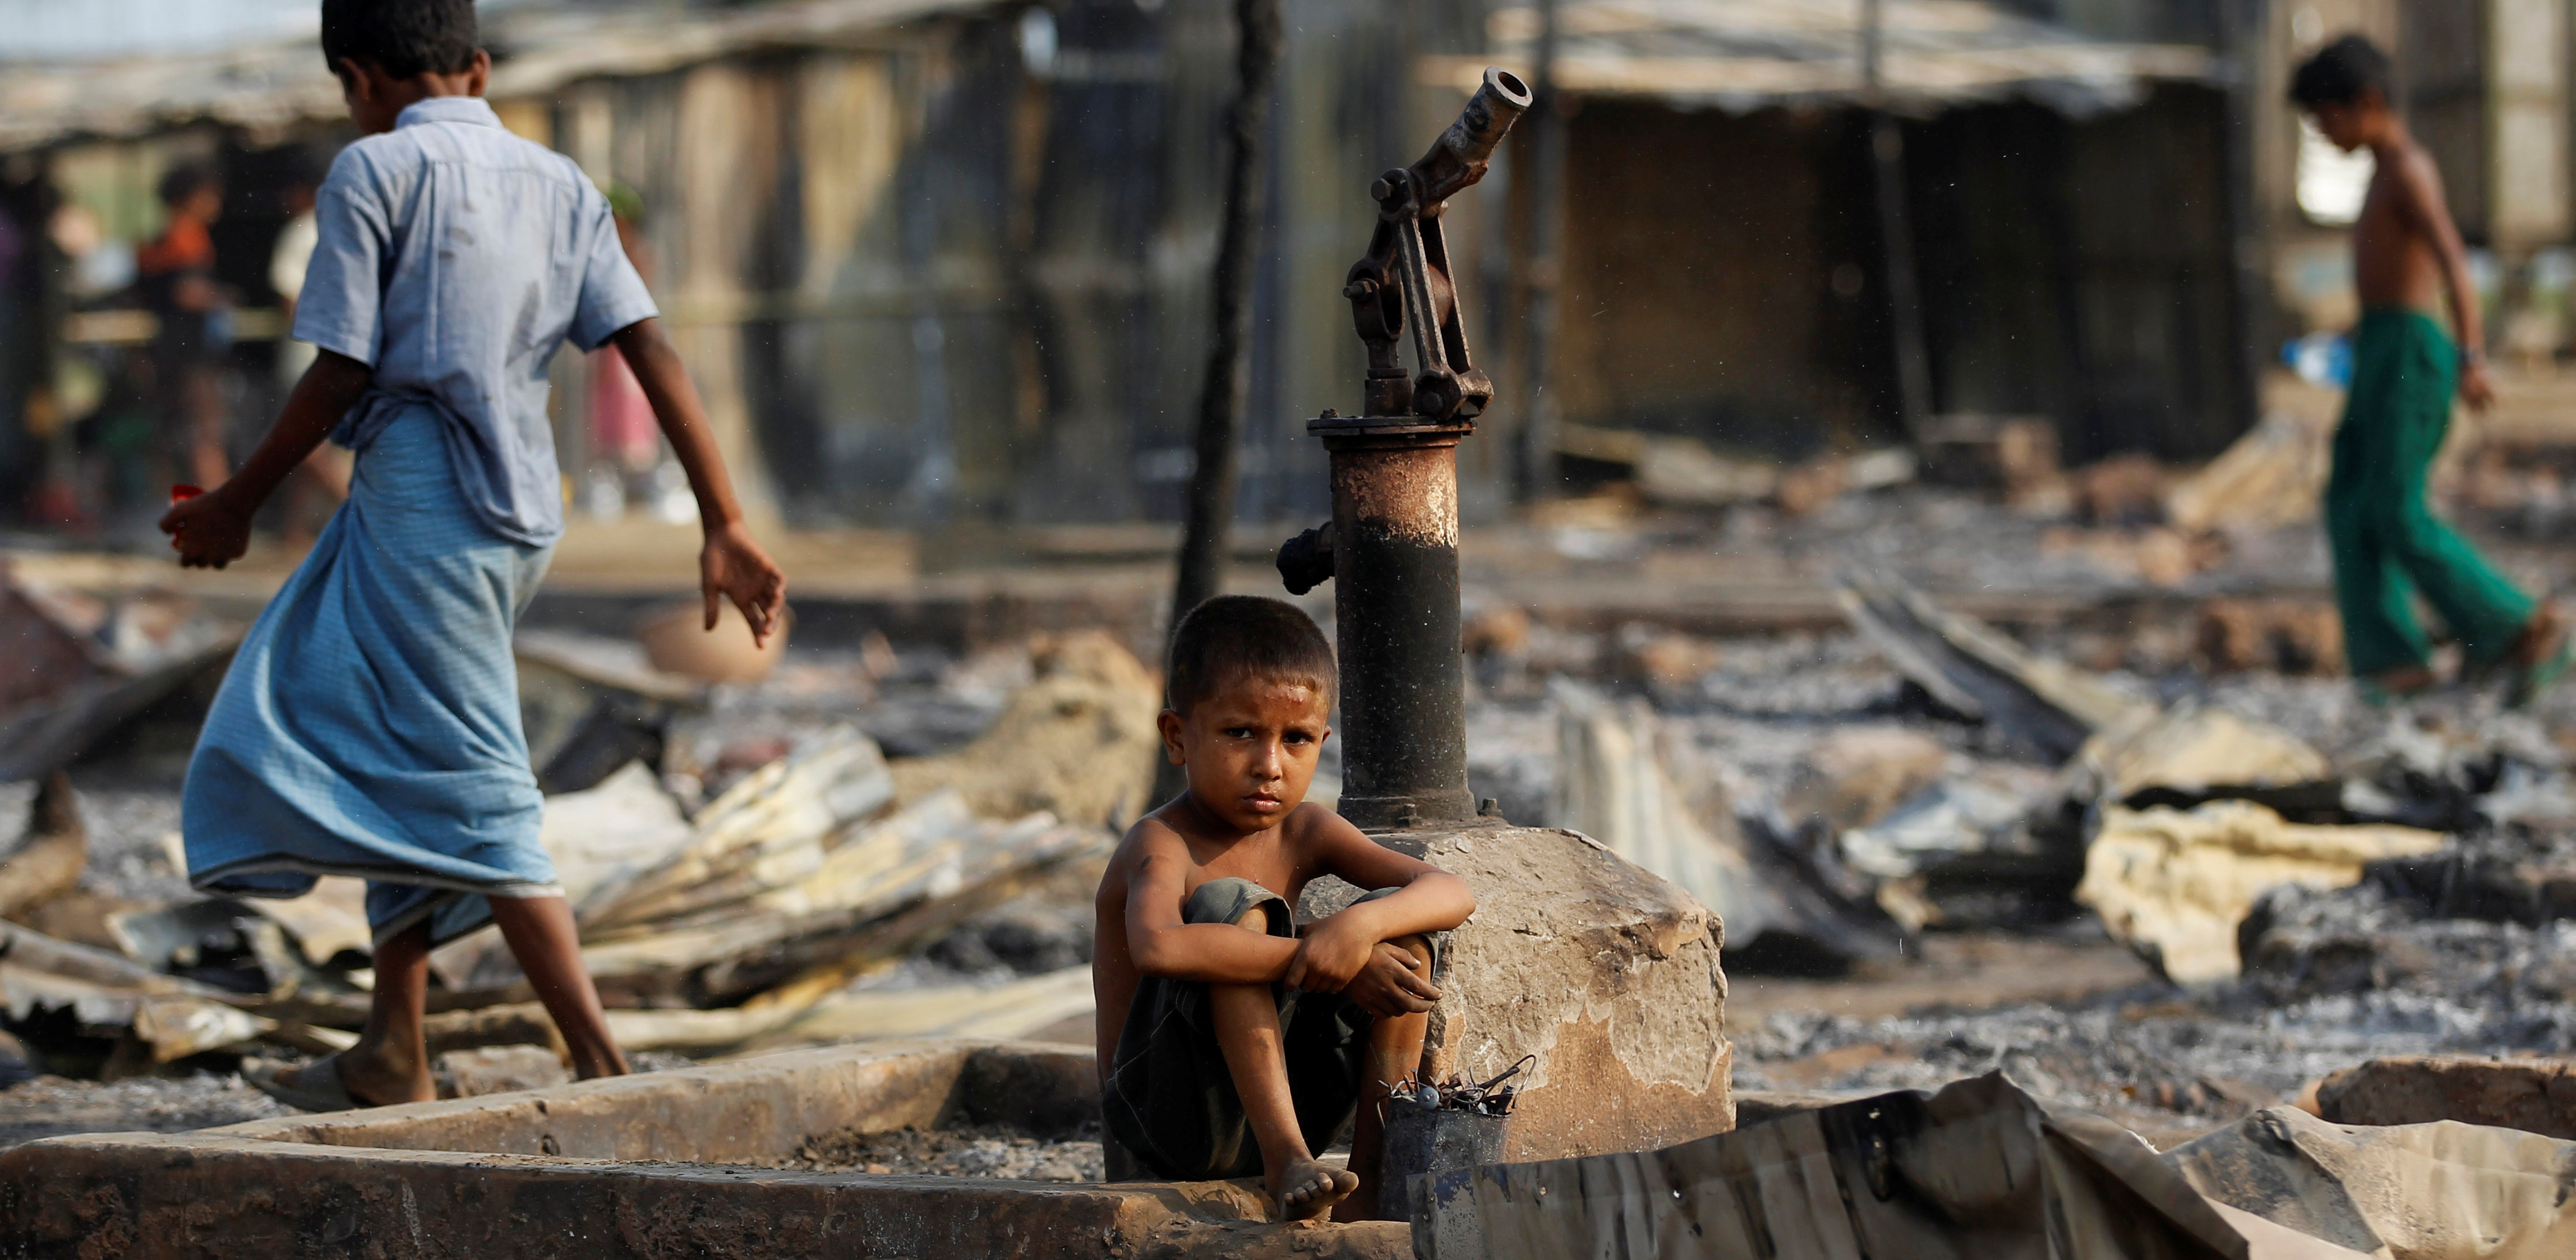 A boy sit in a burnt area after fire destroyed shelters at a camp for internally displaced Rohingya Muslims in the western Rakhine State near Sittwe